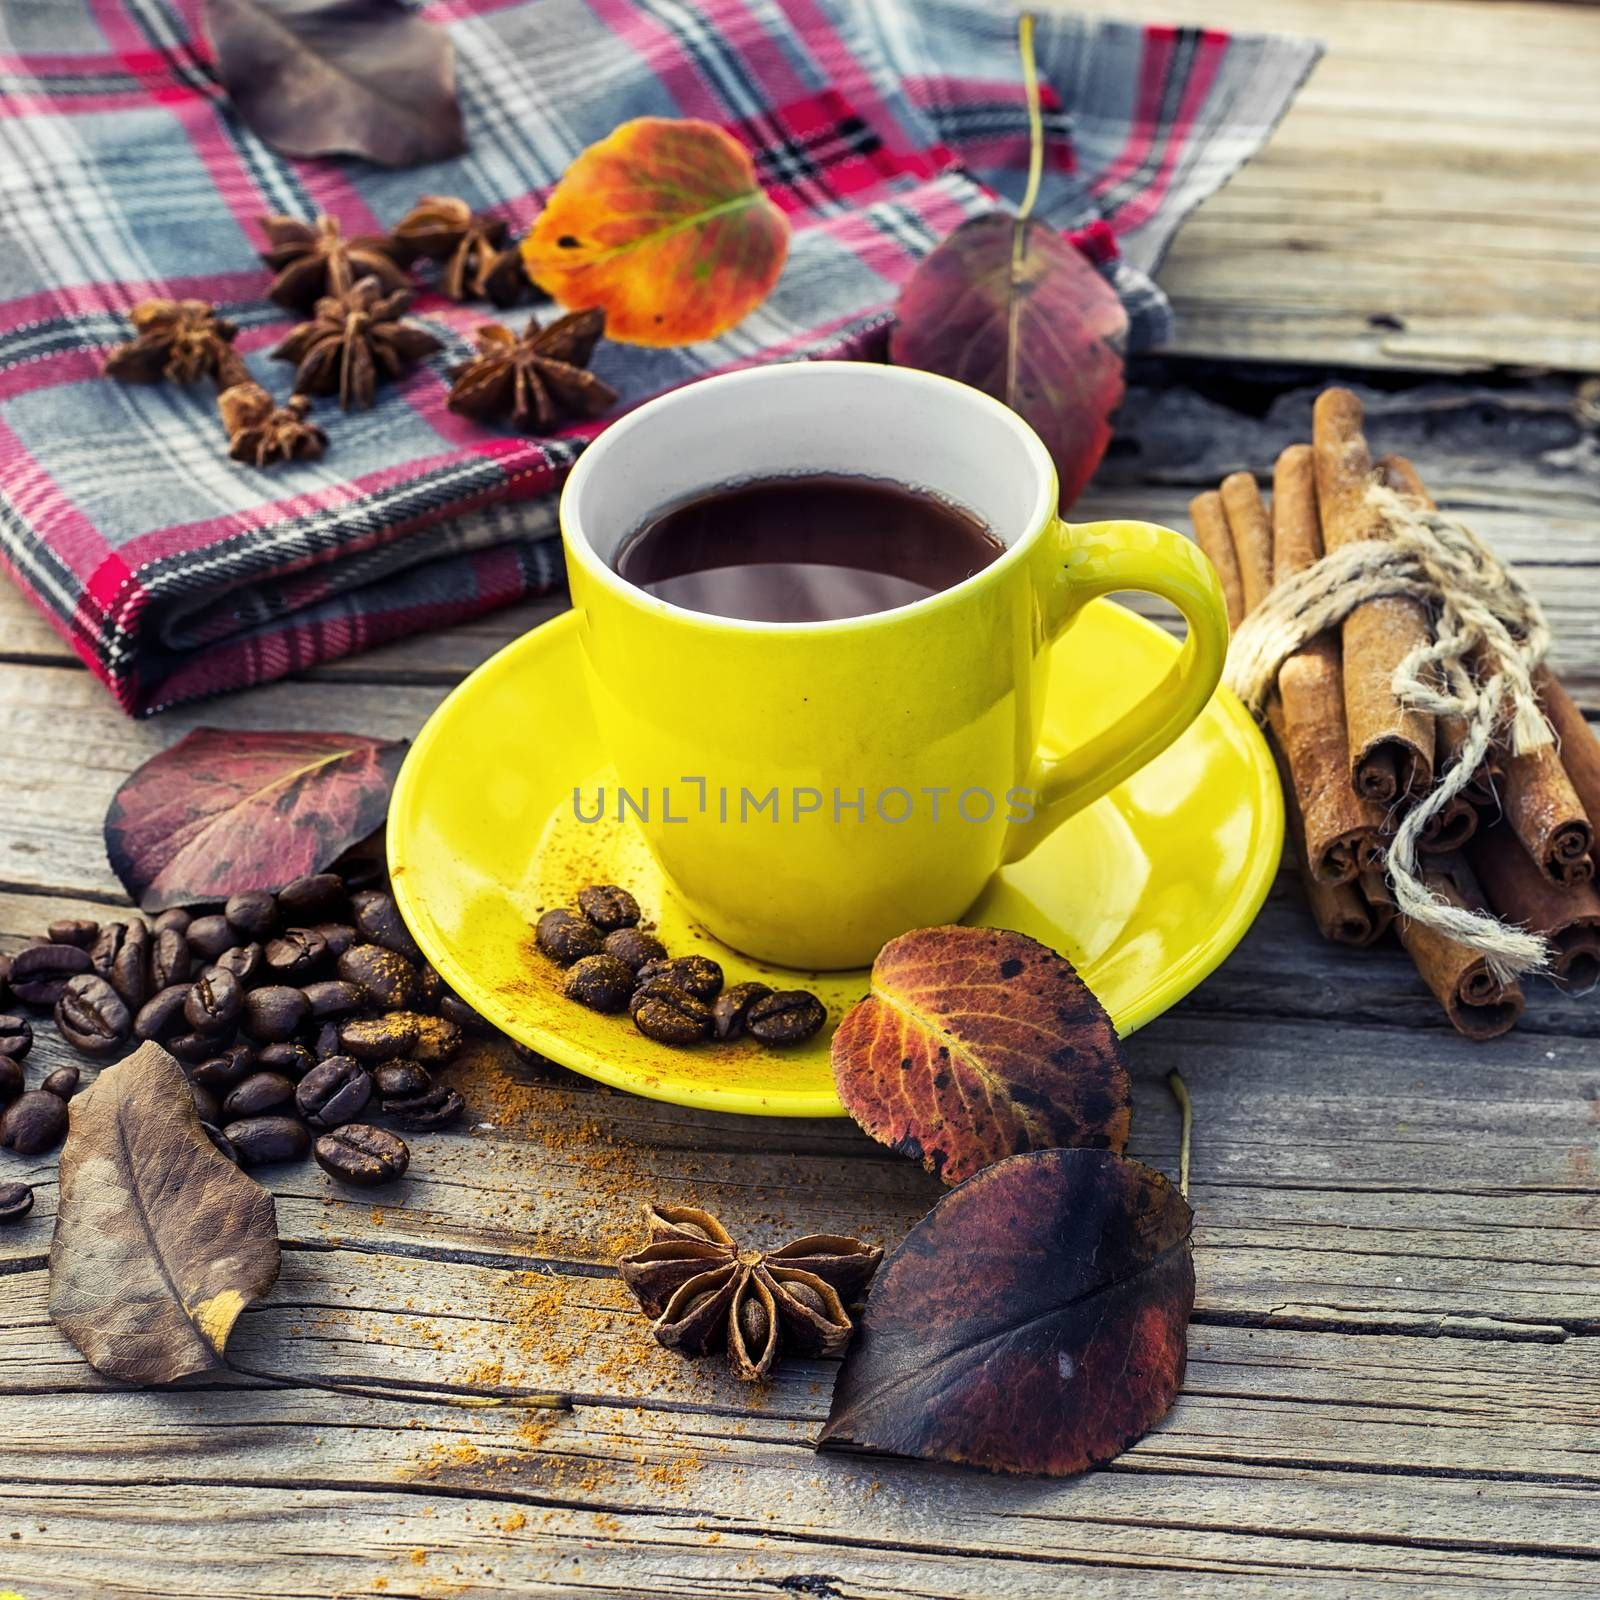 Cup of black coffee on background with warm blanket strewn with autumn leaves